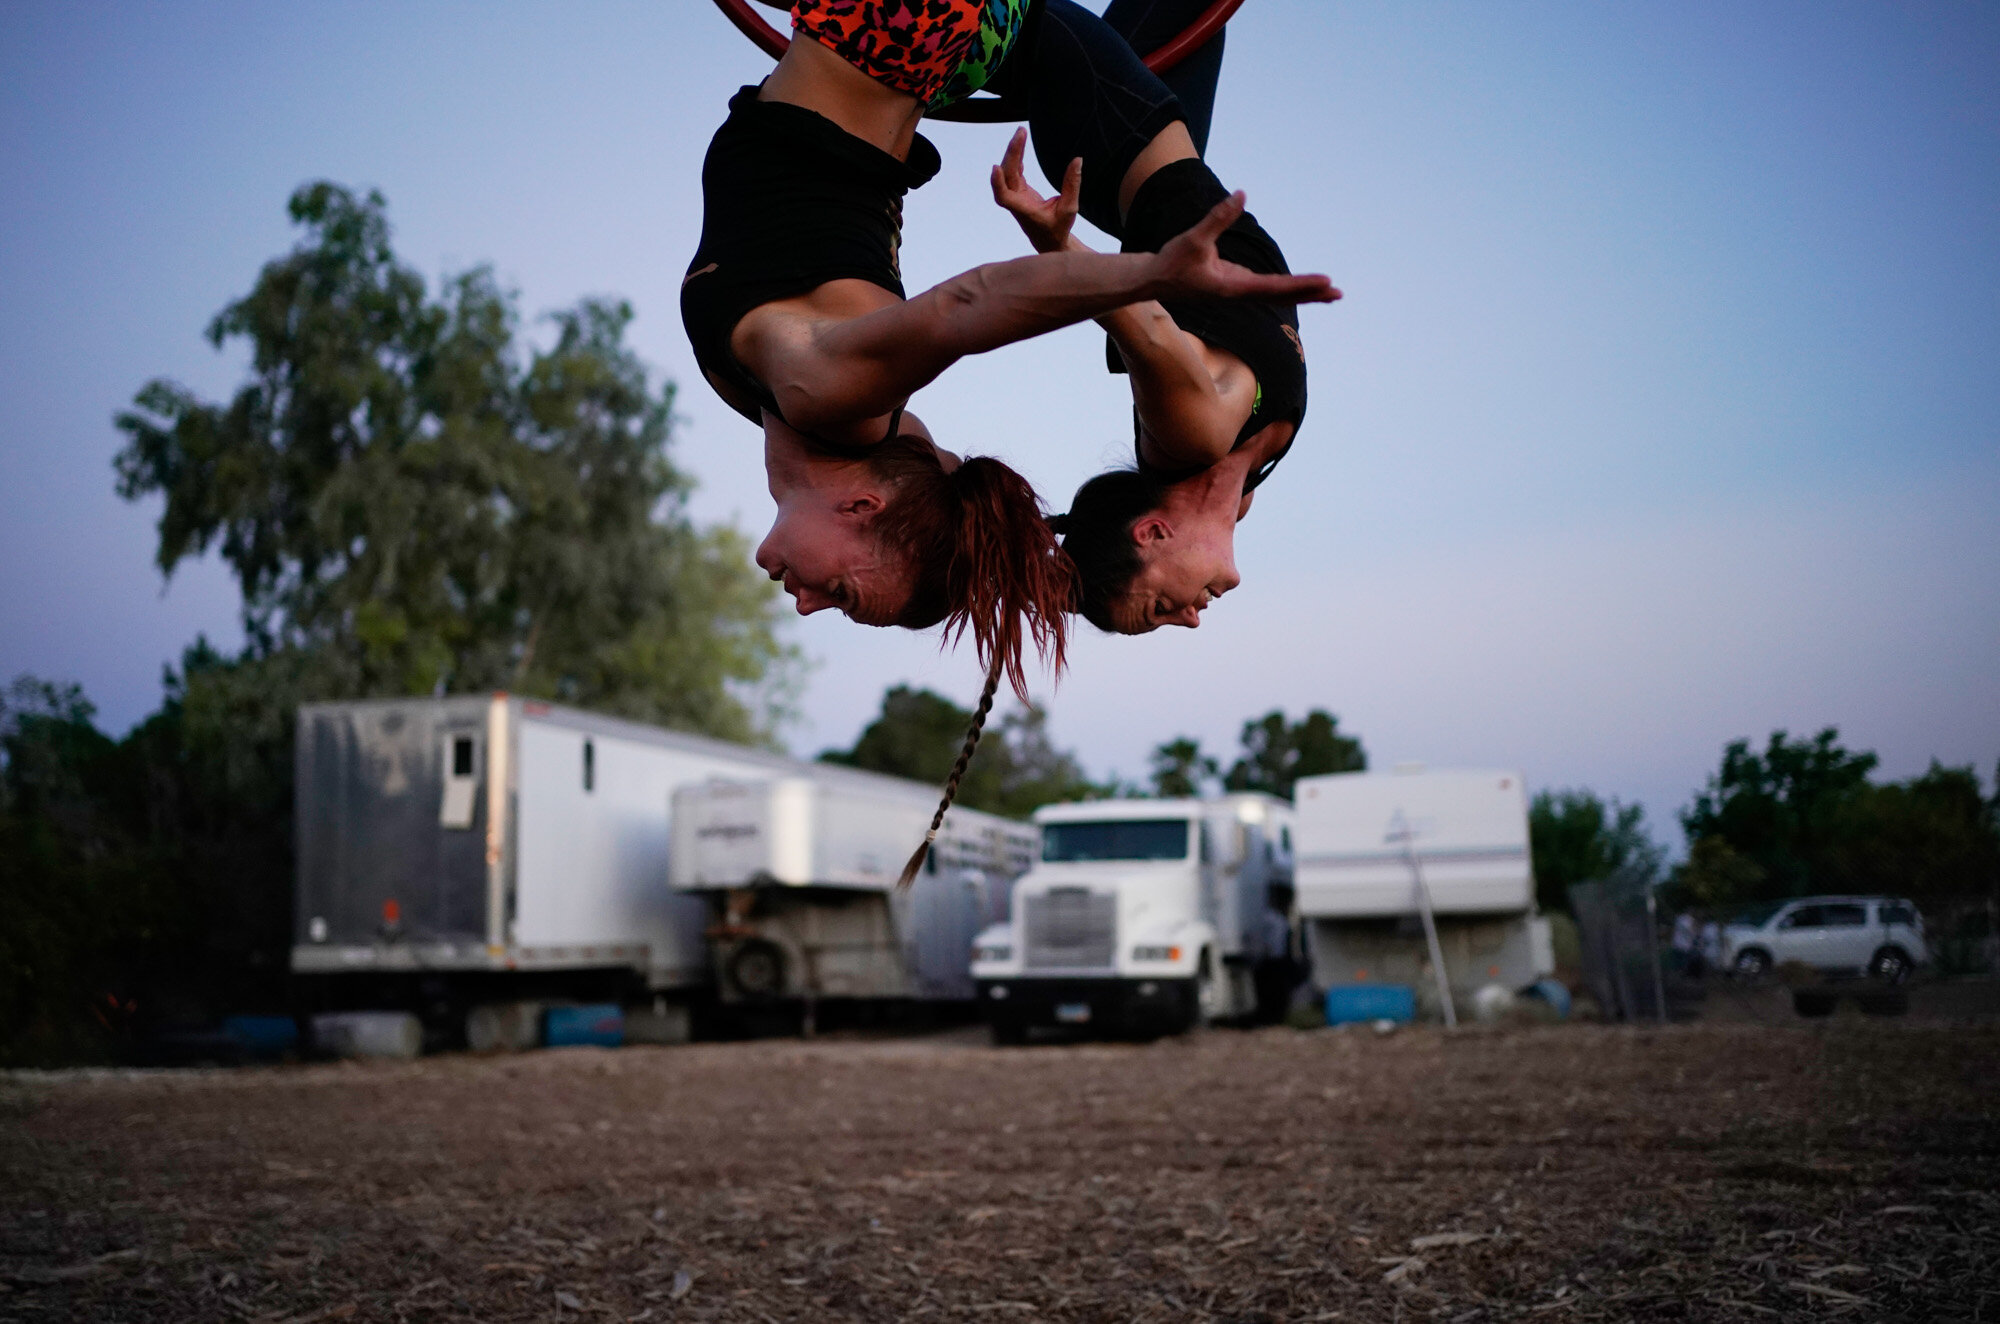 """Lisa Varmbo Martonovich, left, and Nicole England-Czyzewski practice an aerial routine for """"Gladius The Show,"""" a touring equestrian and acrobatic show, on May 28, 2020, in Las Vegas. The coronavirus forced the producers to cancel all of their performances through 2020. (AP Photo/John Locher)"""